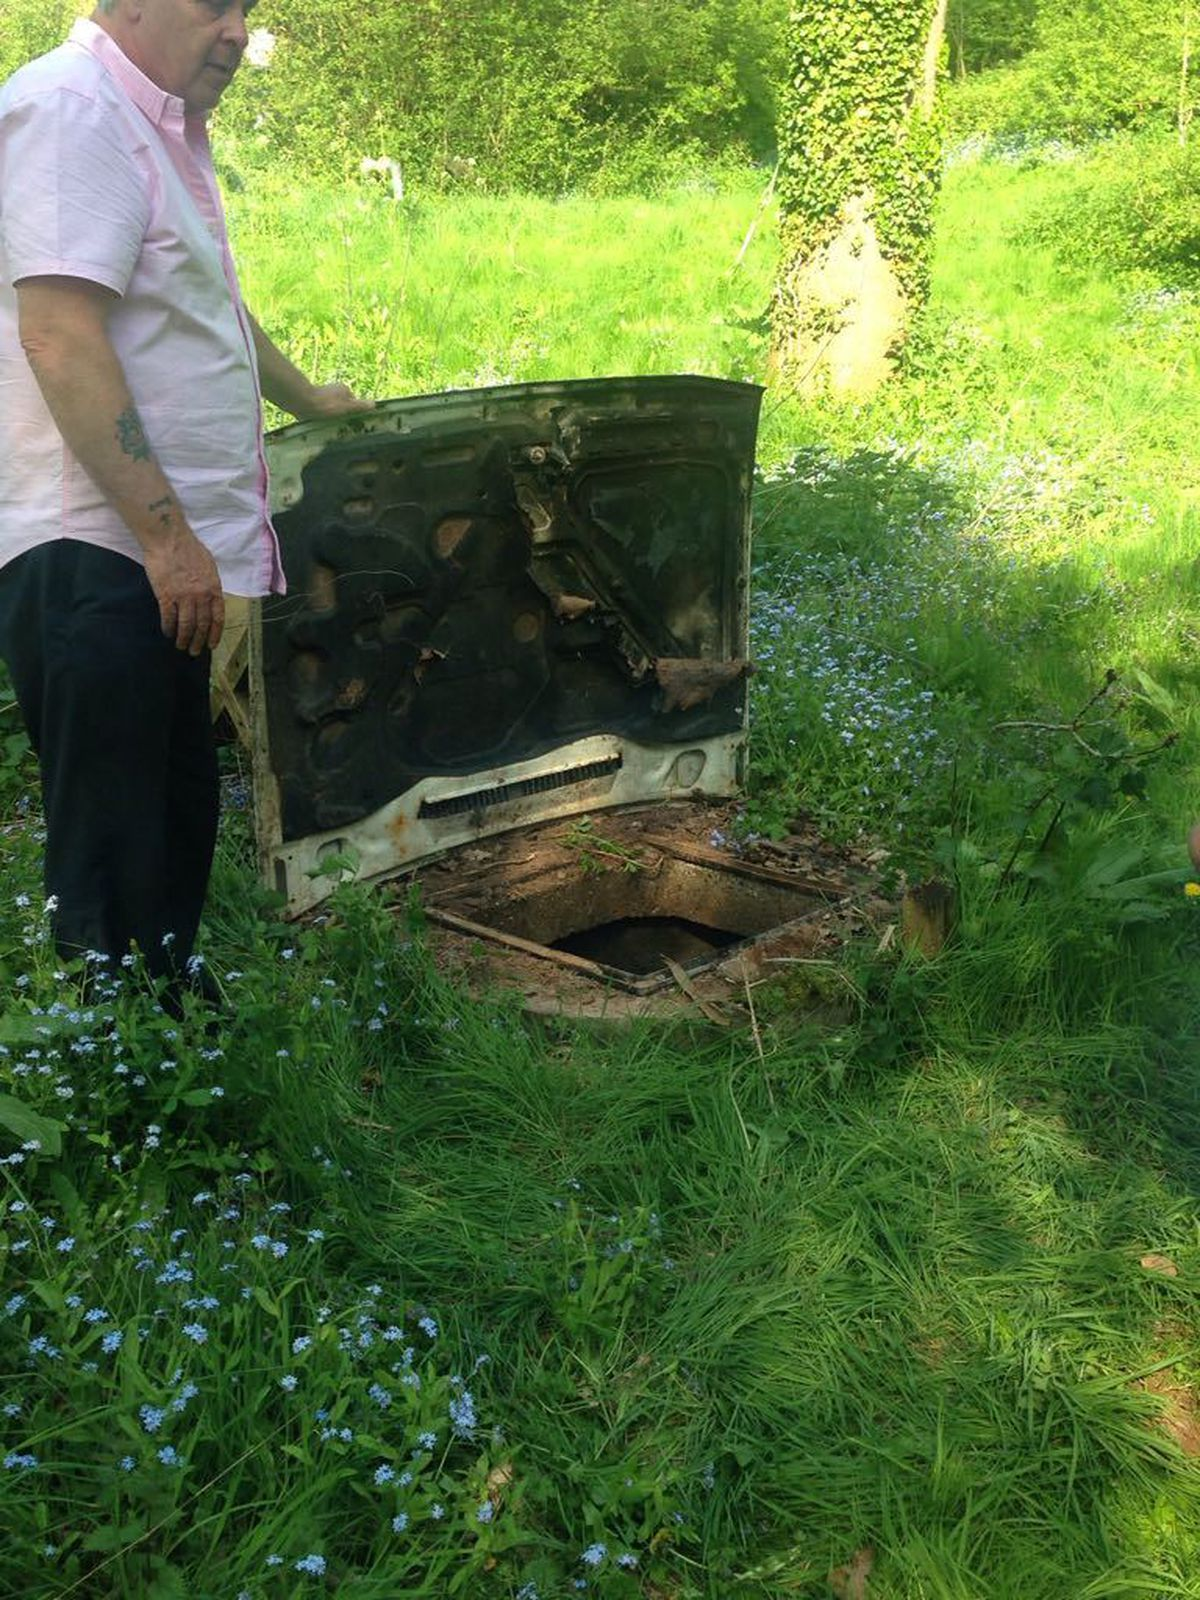 Sienna's father attempted to cover the open manhole with a car bonnet which he found in a nearby hedge